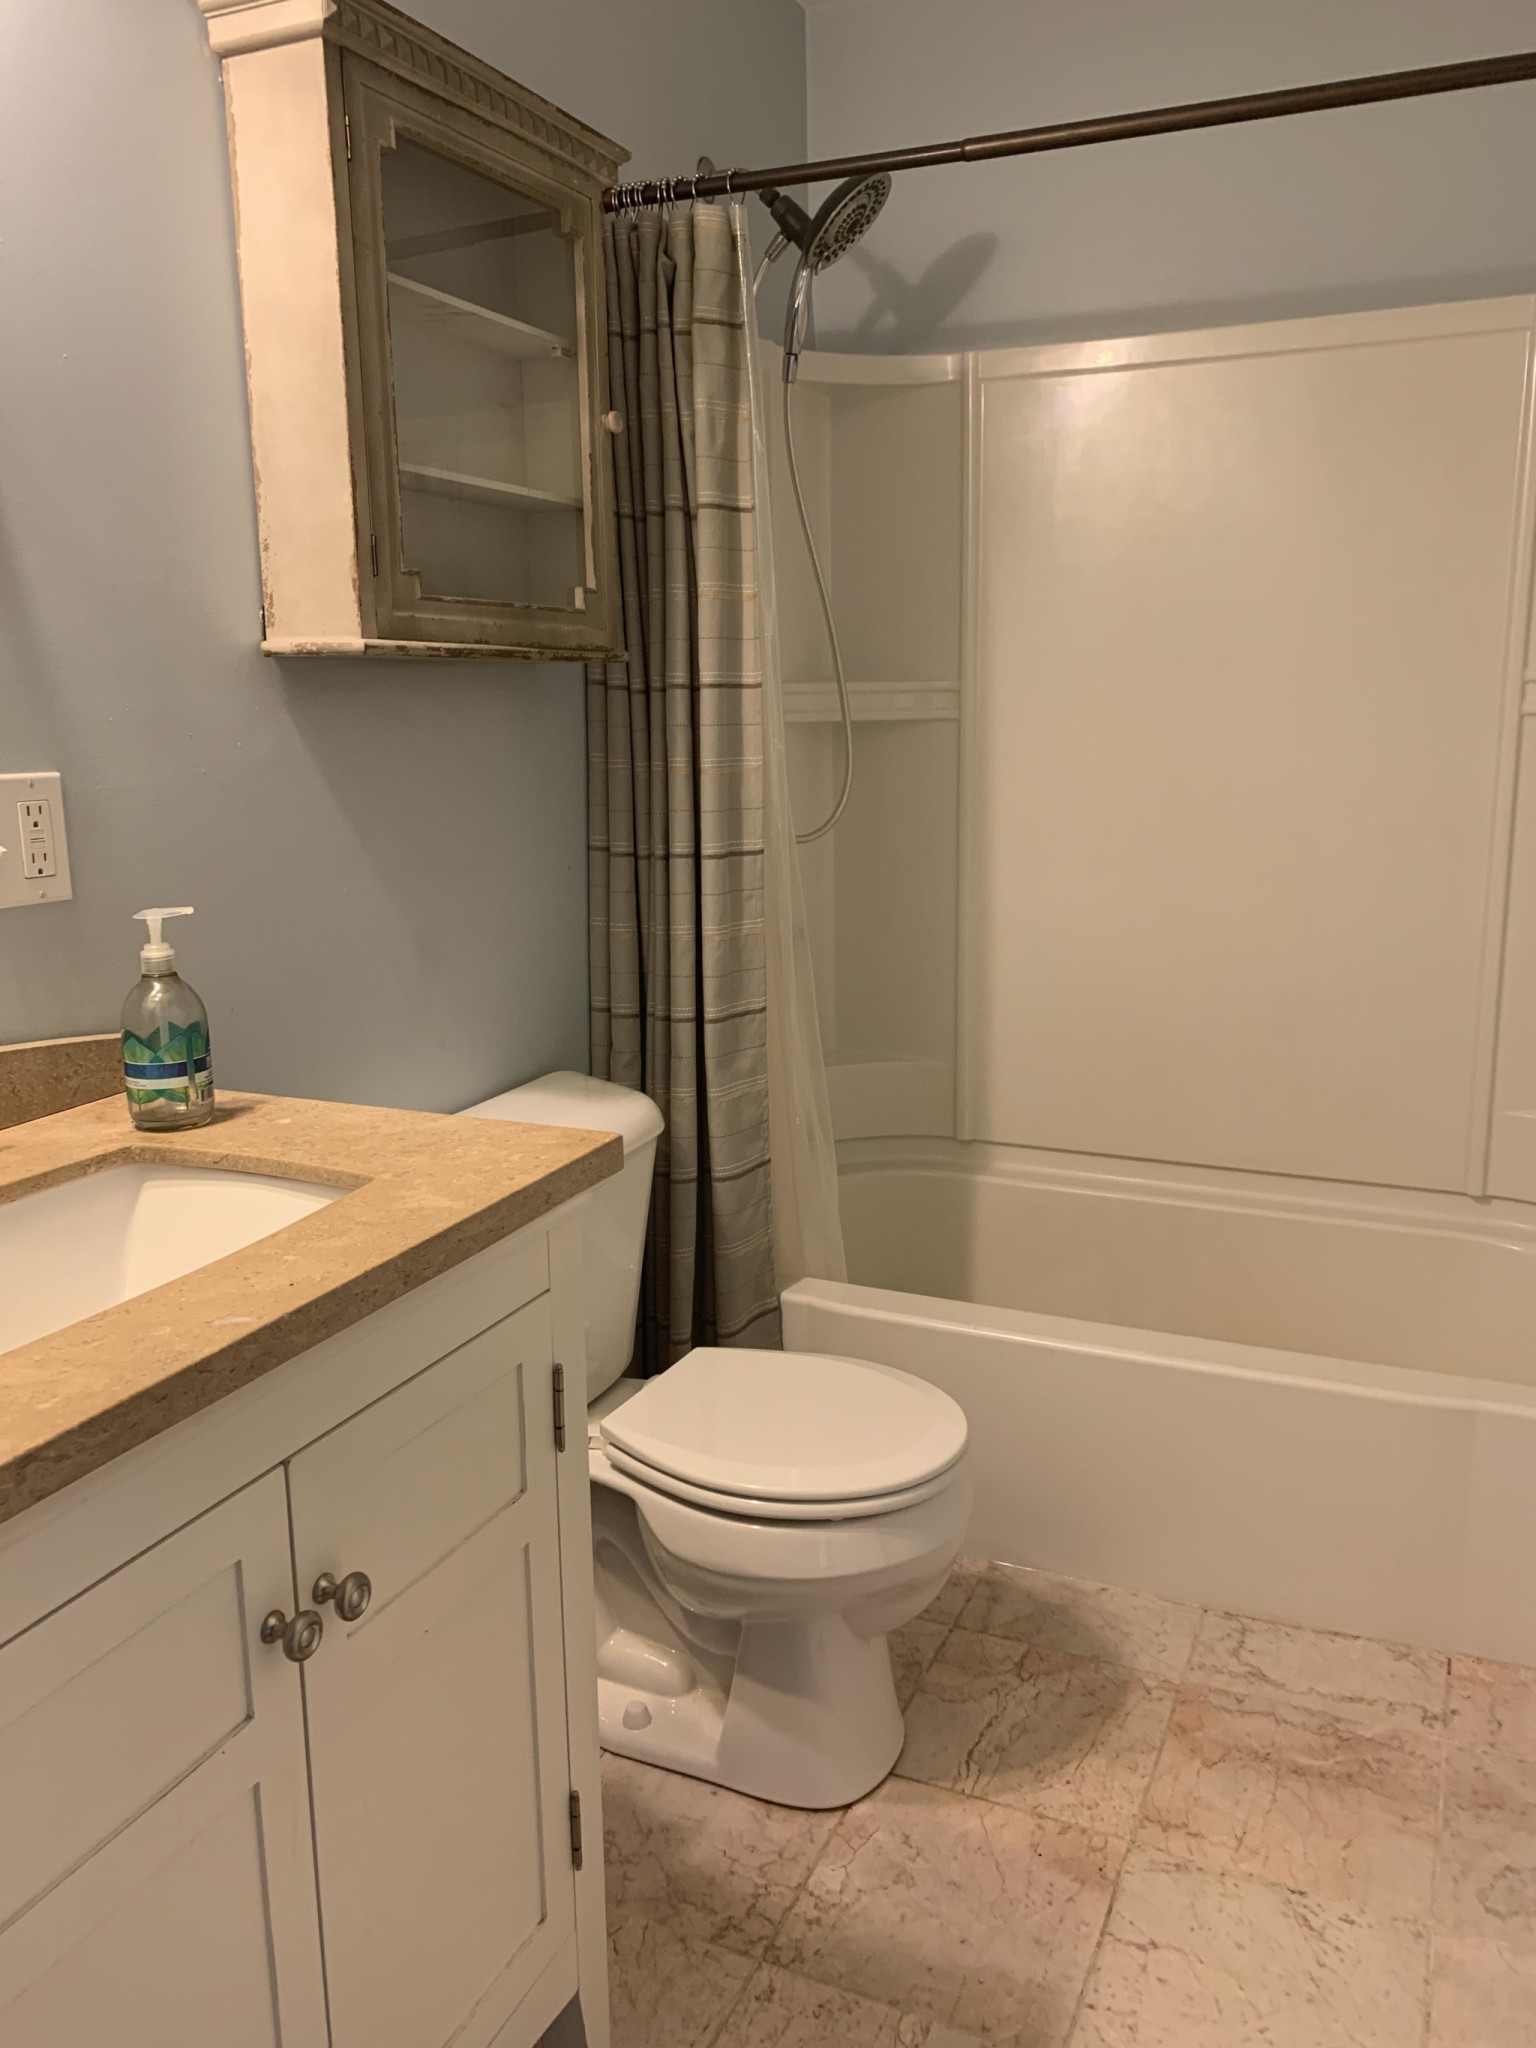 2 Beds, 1.5 Baths apartment in Boston, Roslindale for $2,200